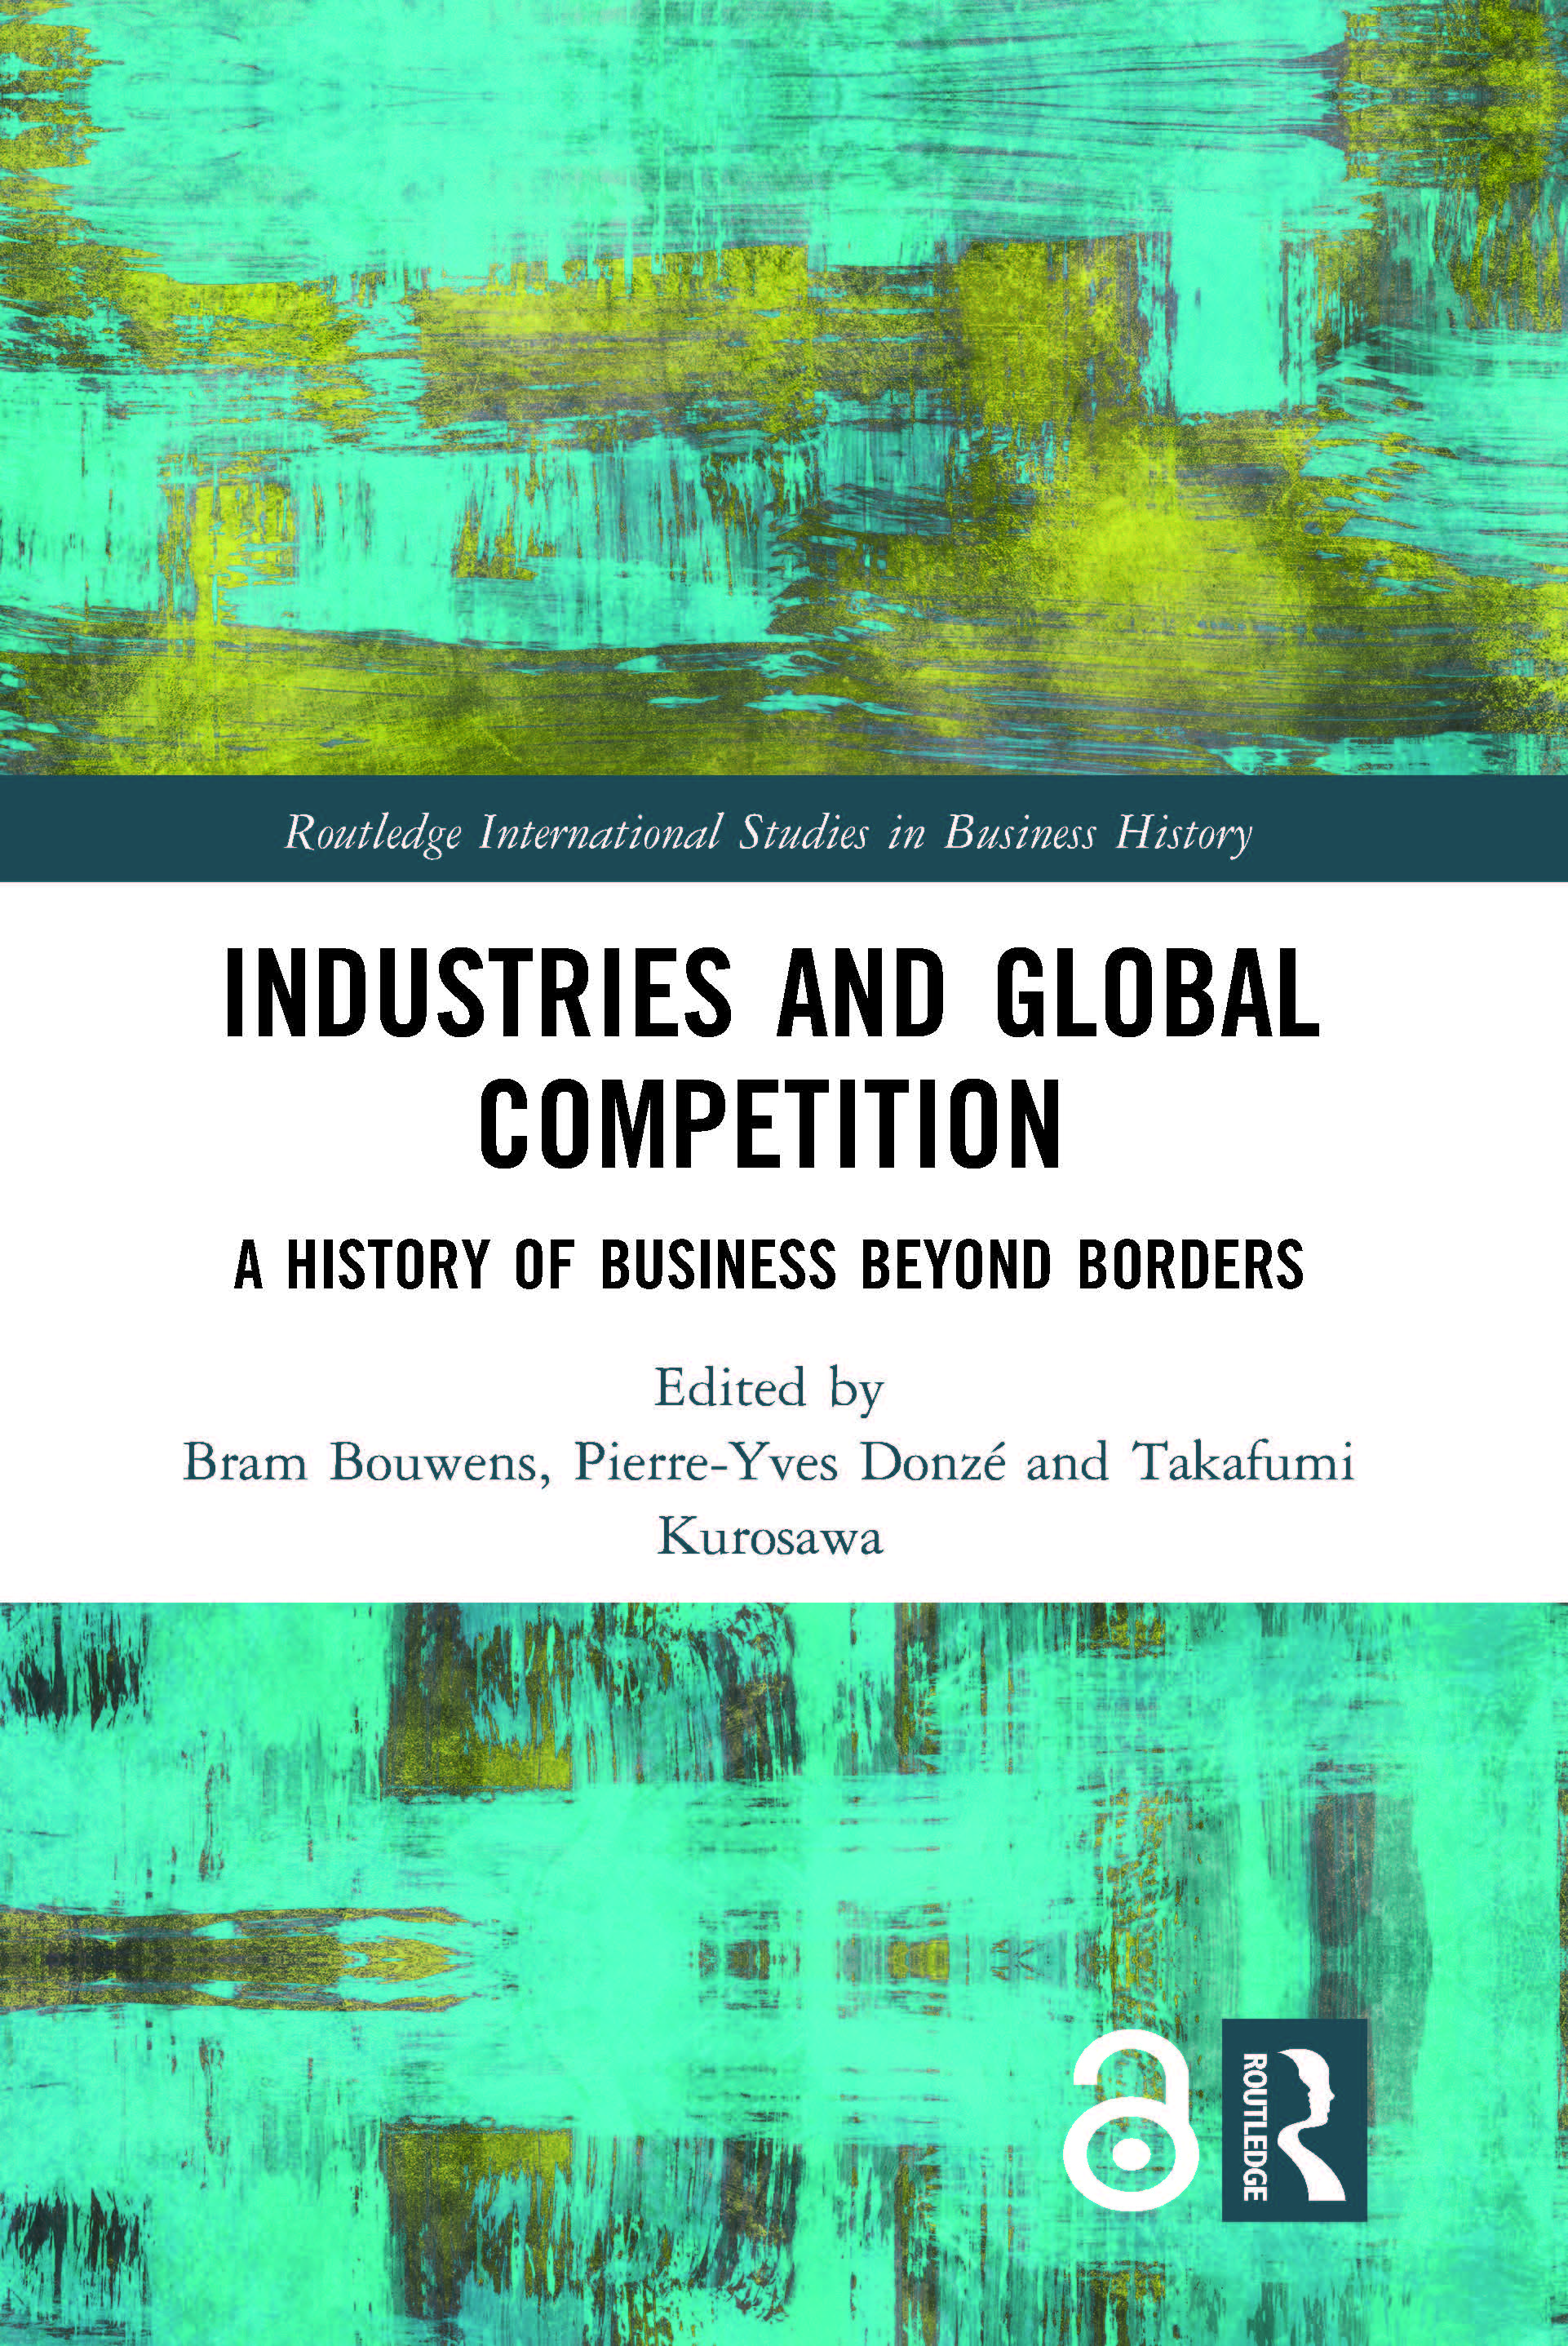 Industries and Global Competition: A History of Business Beyond Borders book cover